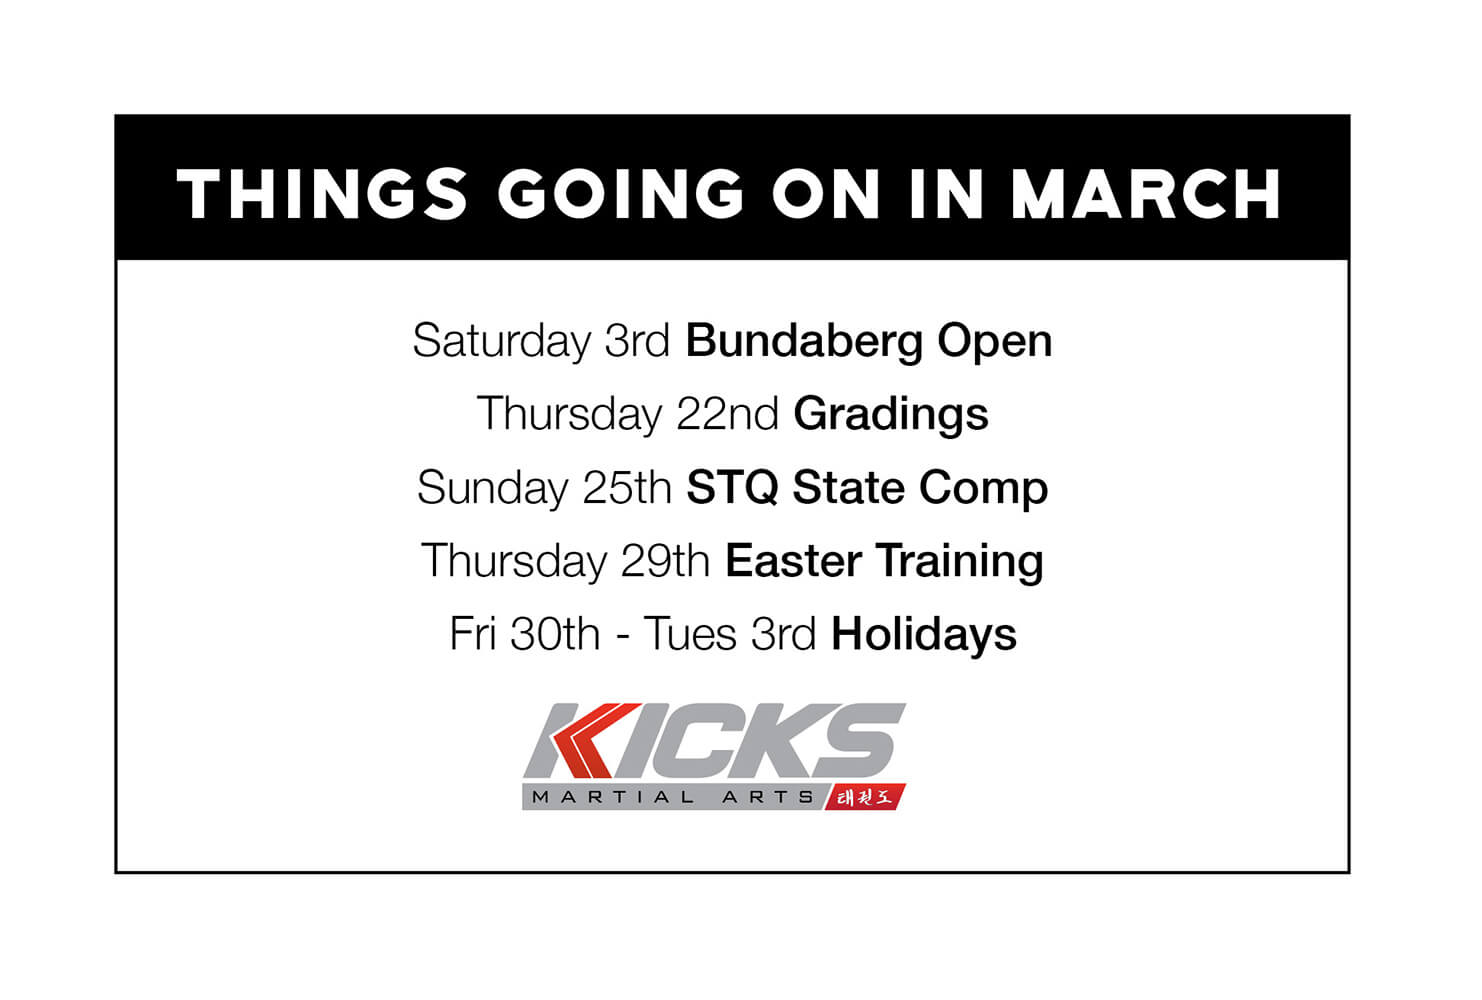 Things going on in March